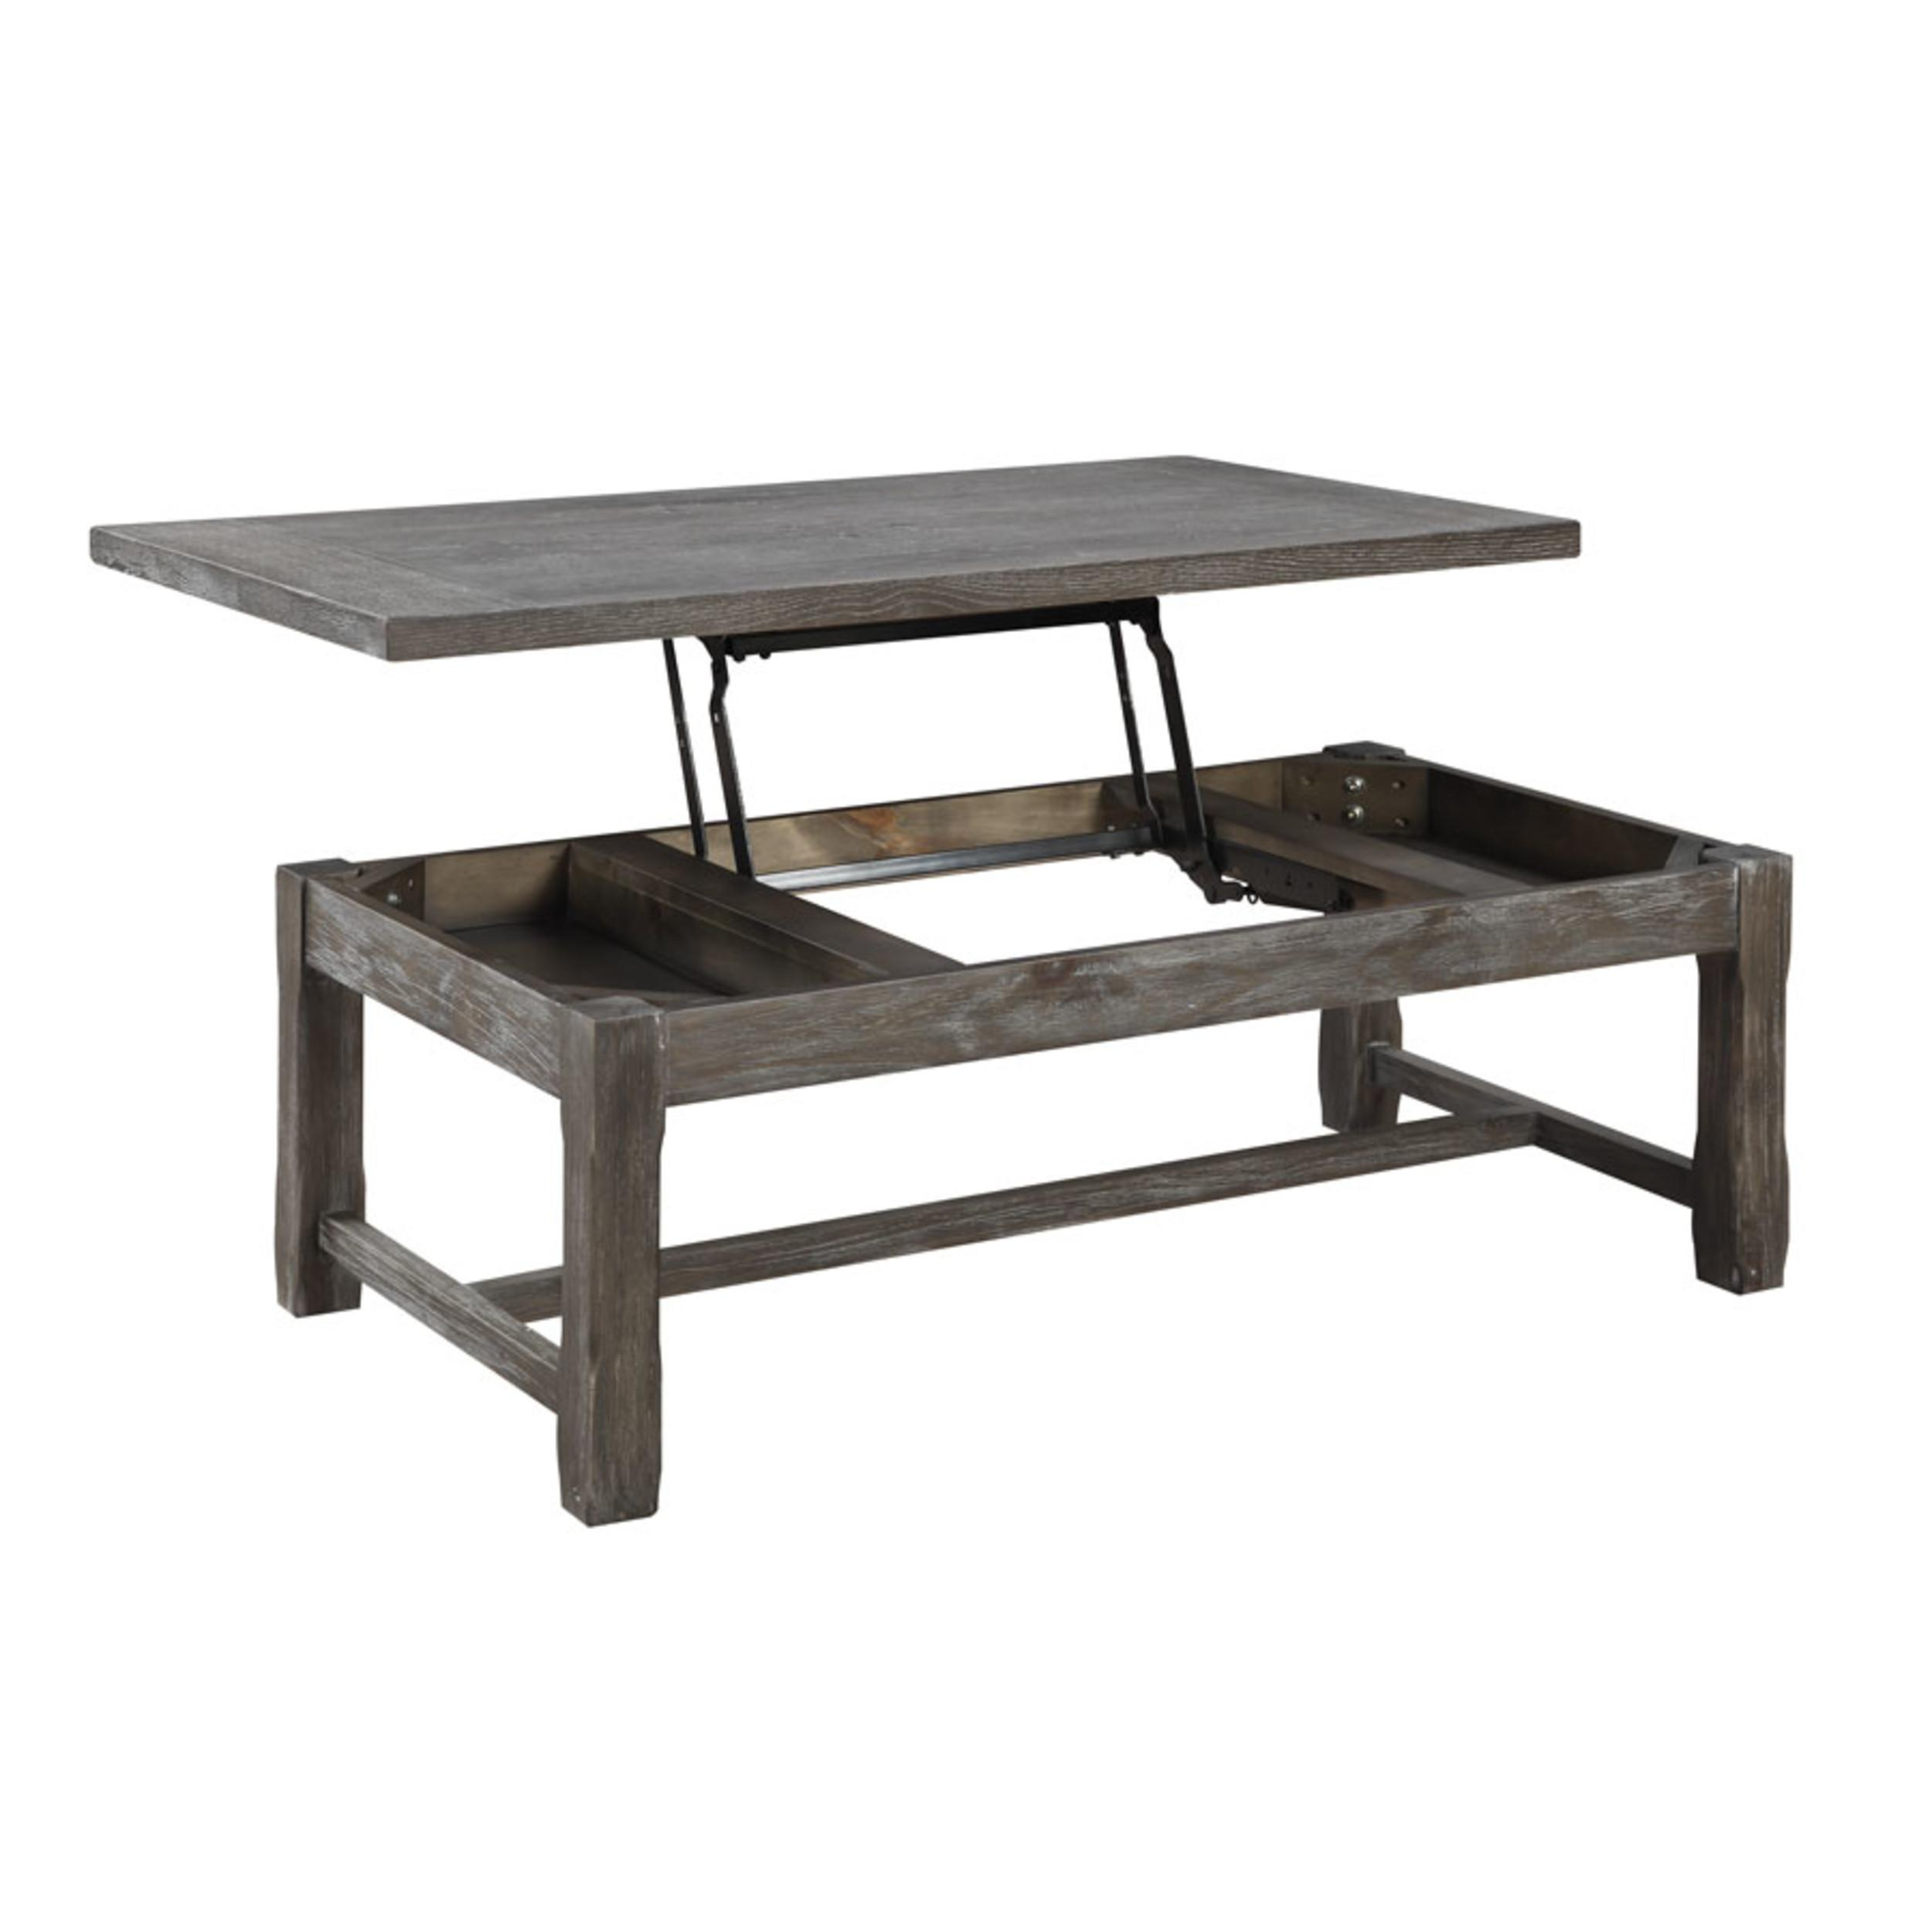 Emerald Home Paladin Charcoal Gray Wood Lift Top Coffee Table The